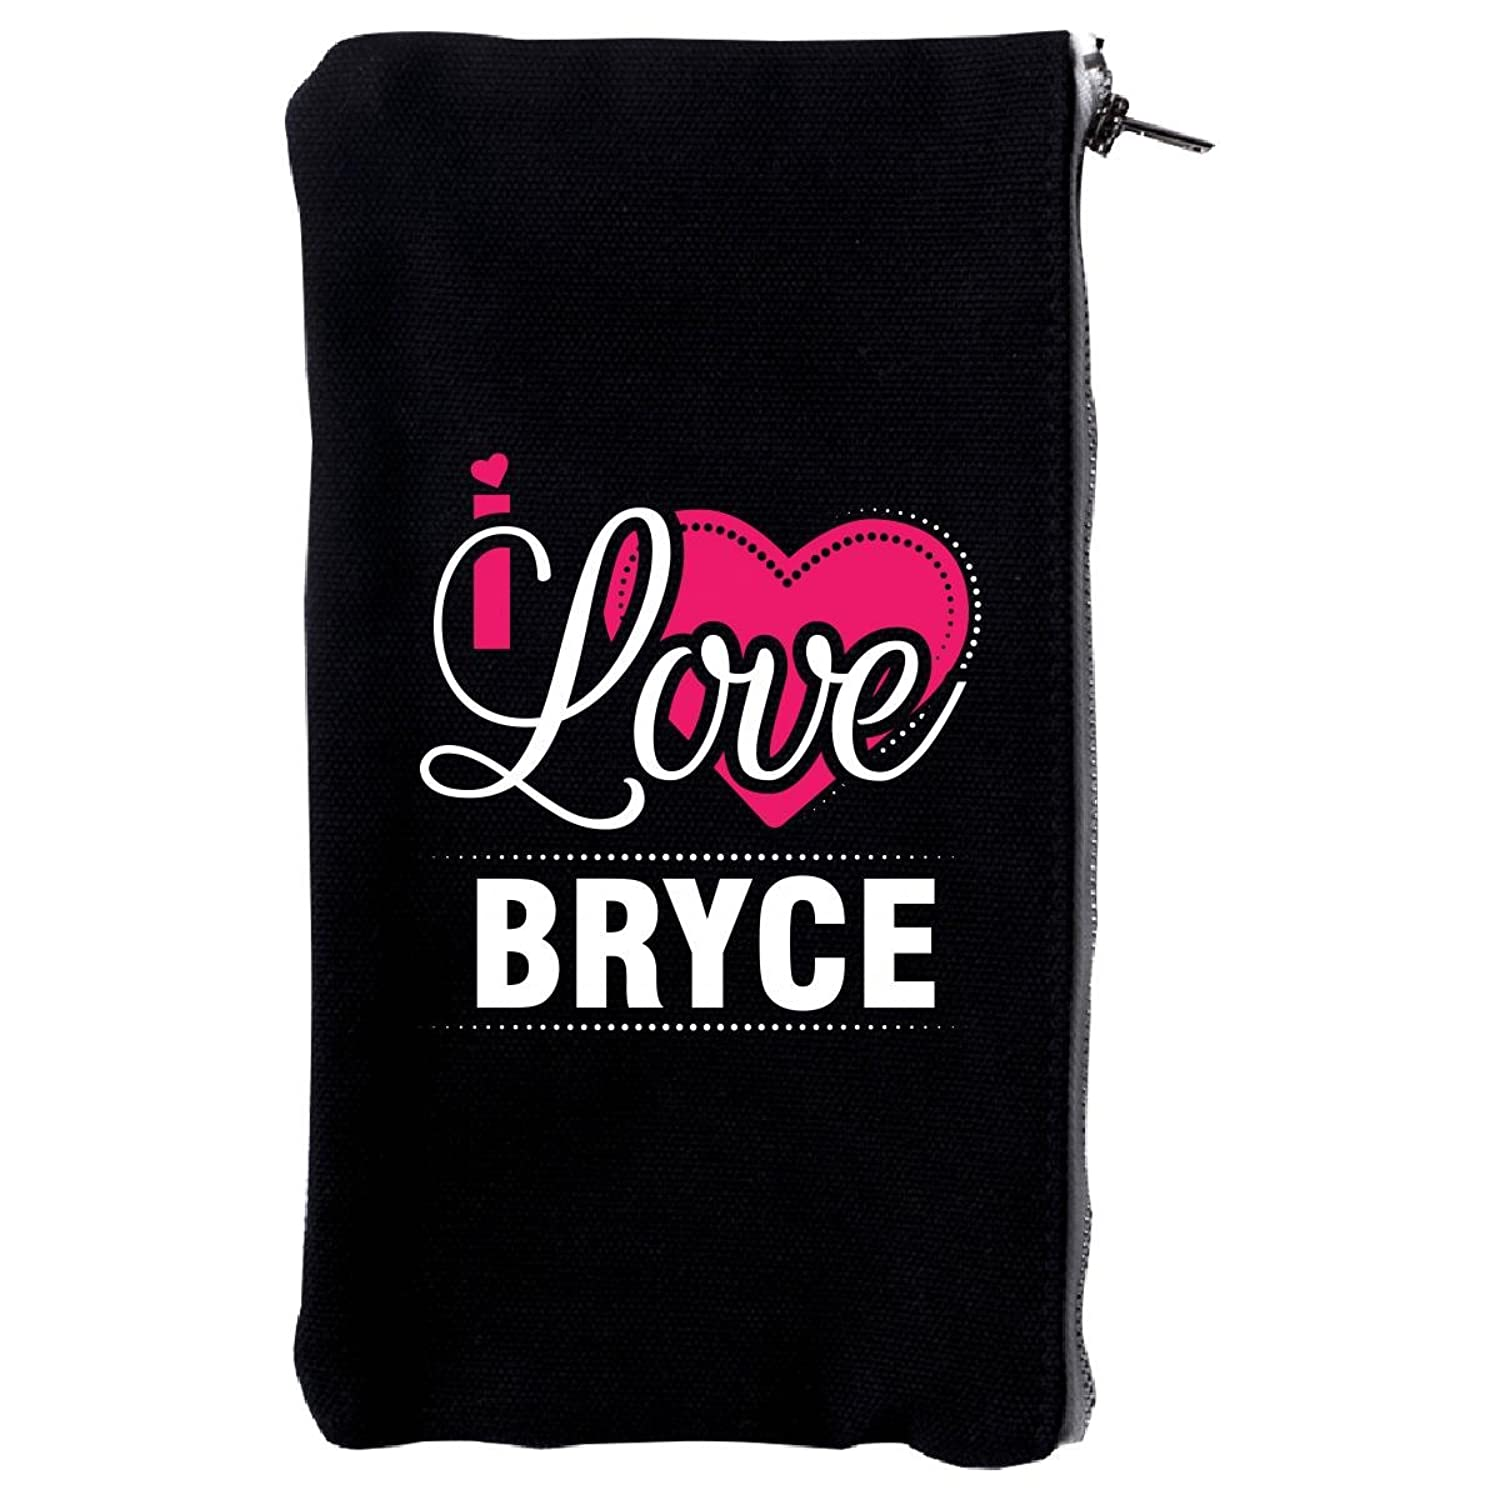 I Love Bryce - Cool Gift For Bryce From Girlfriend - Make Up Case